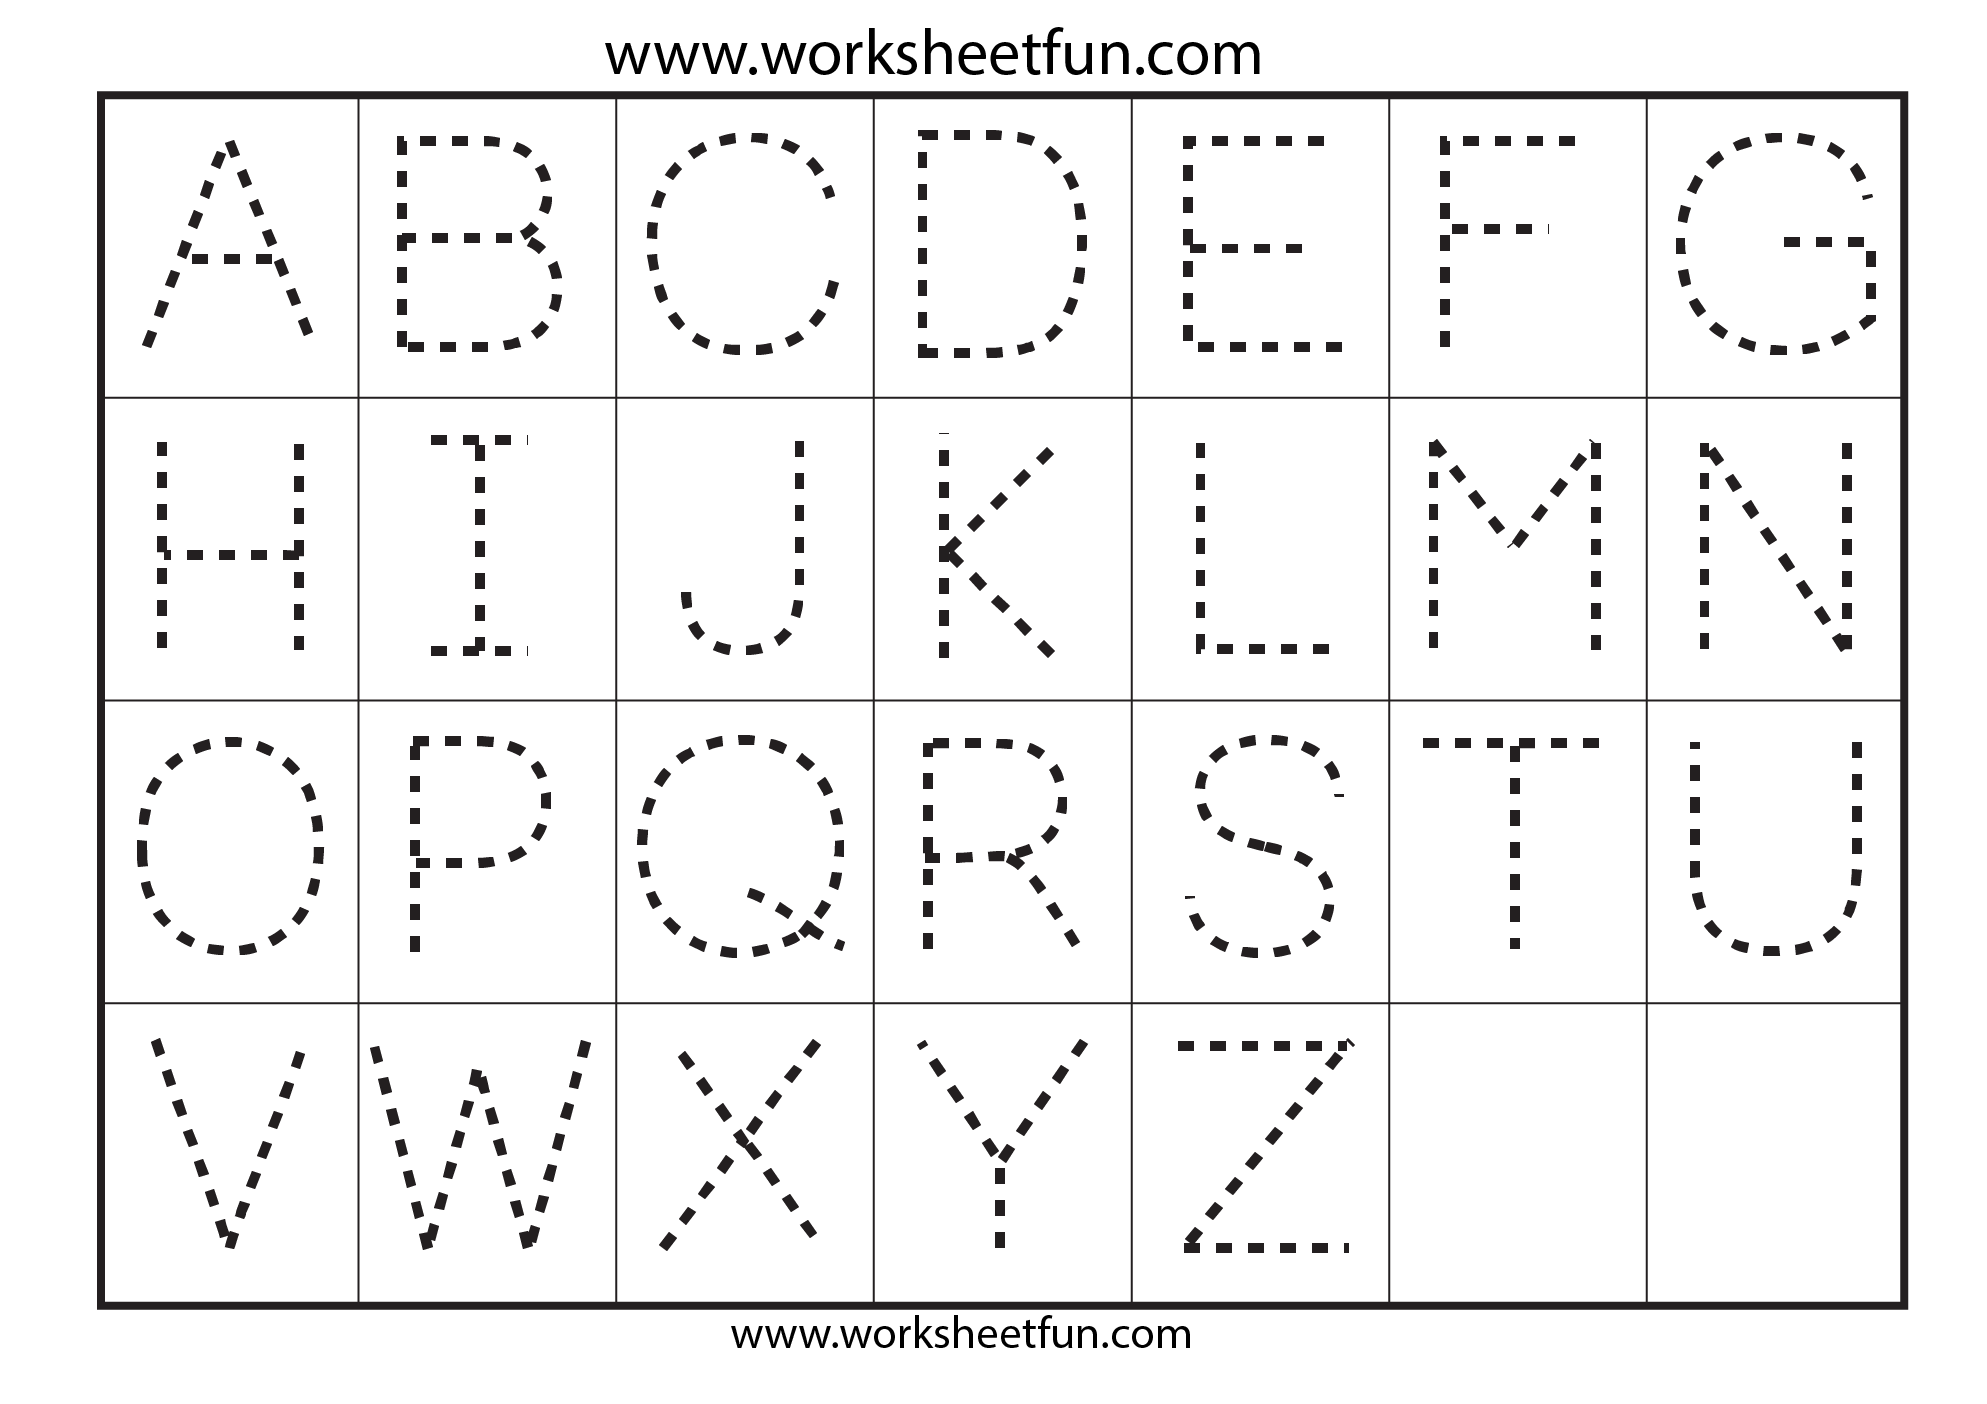 preschool worksheets alphabet tracing letter a art pinterest worksheets tracing letters. Black Bedroom Furniture Sets. Home Design Ideas